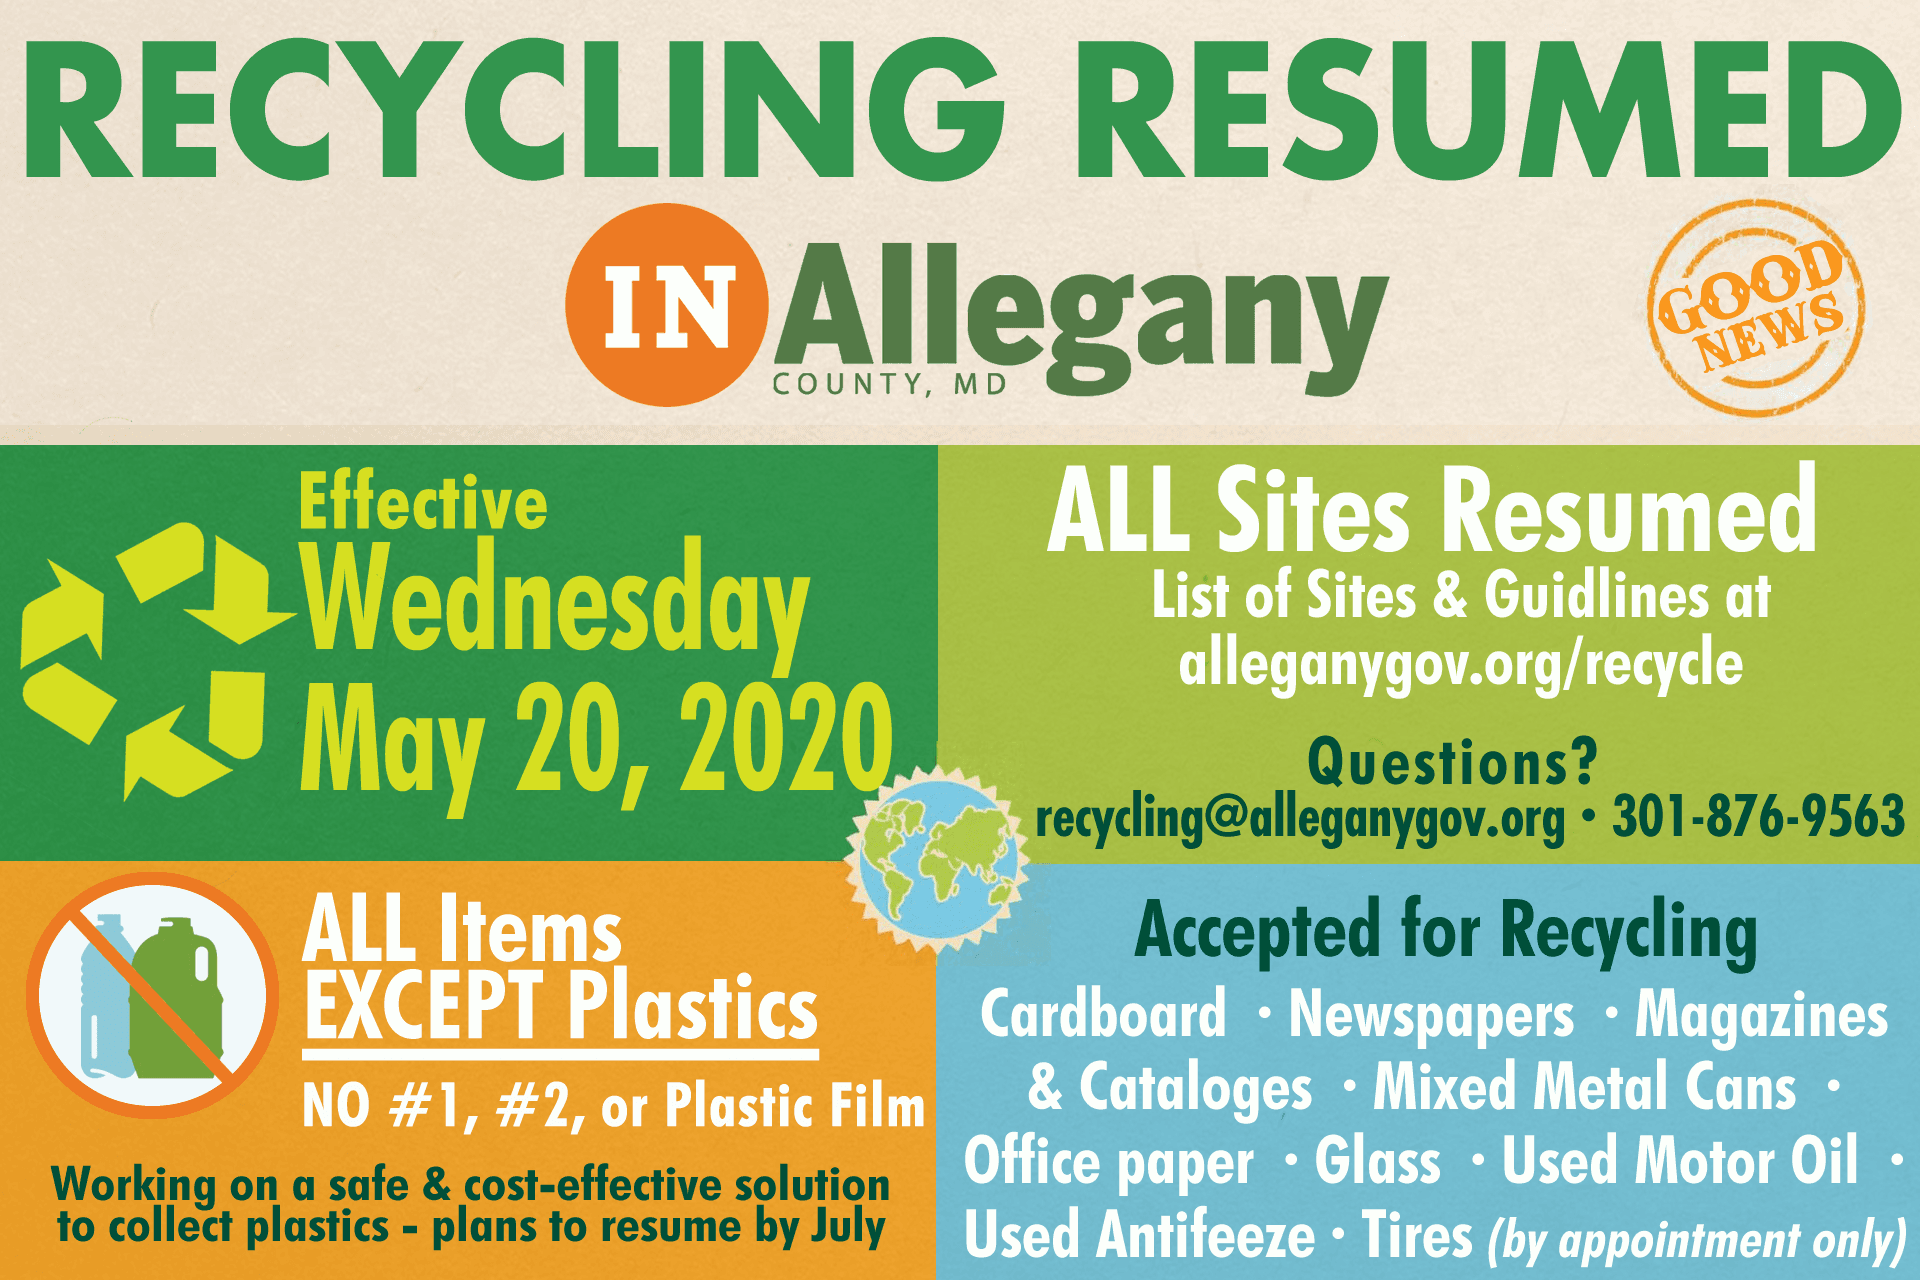 May 20 Recycling Resumed Allegany County MD_